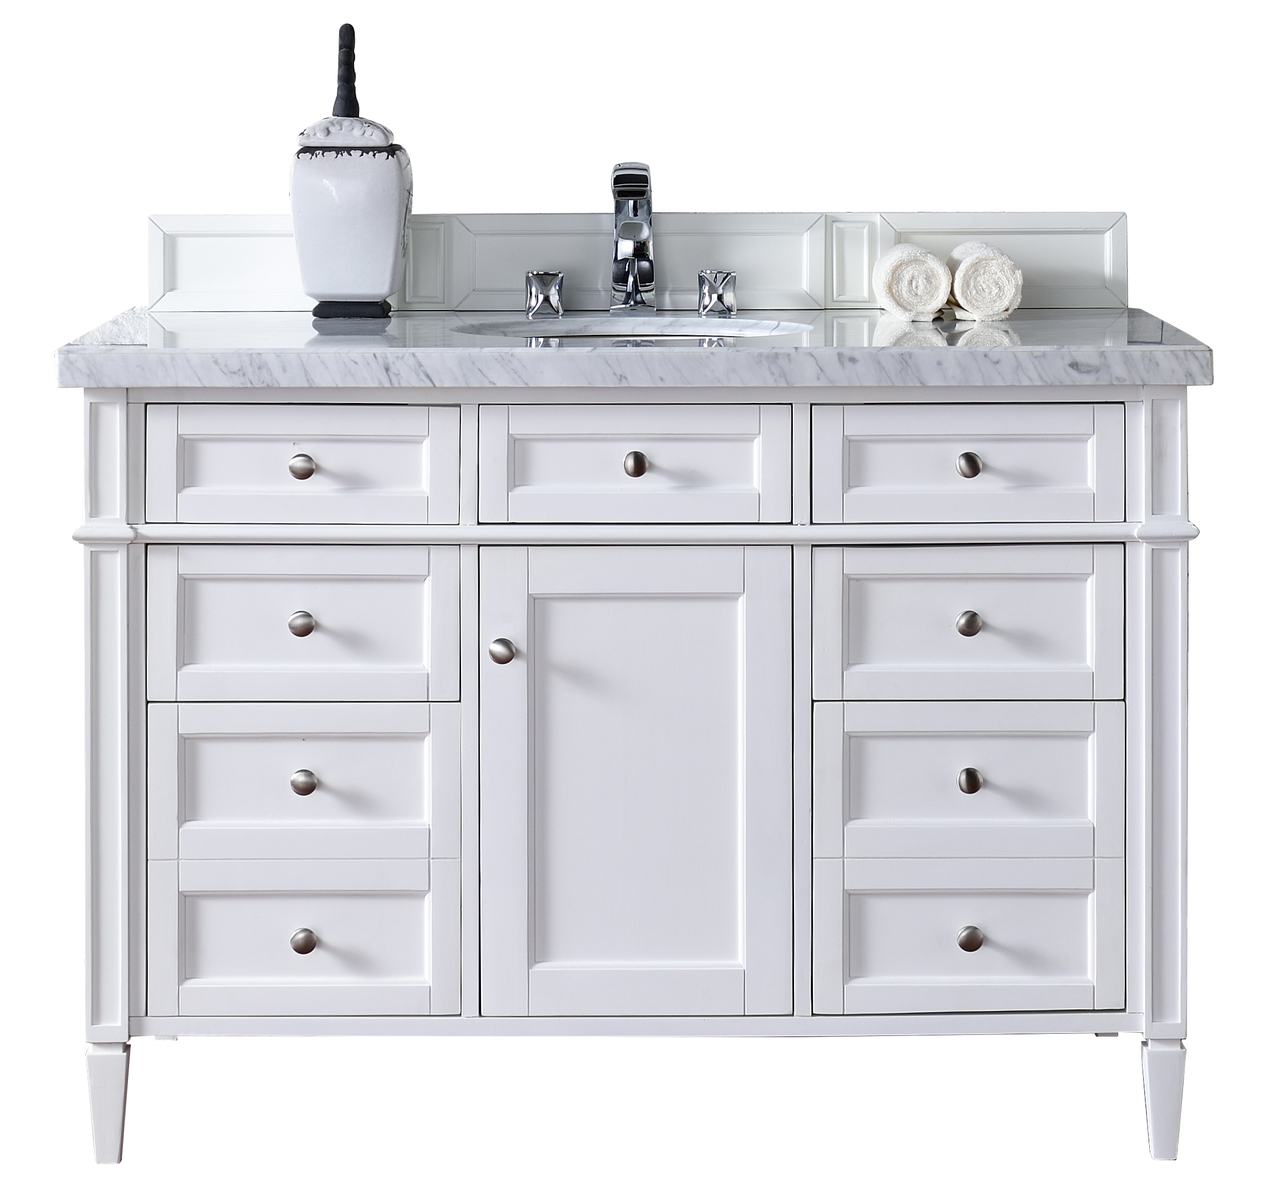 48 Inch Single Contemporary Bathroom Vanity White Finish Optional Tops